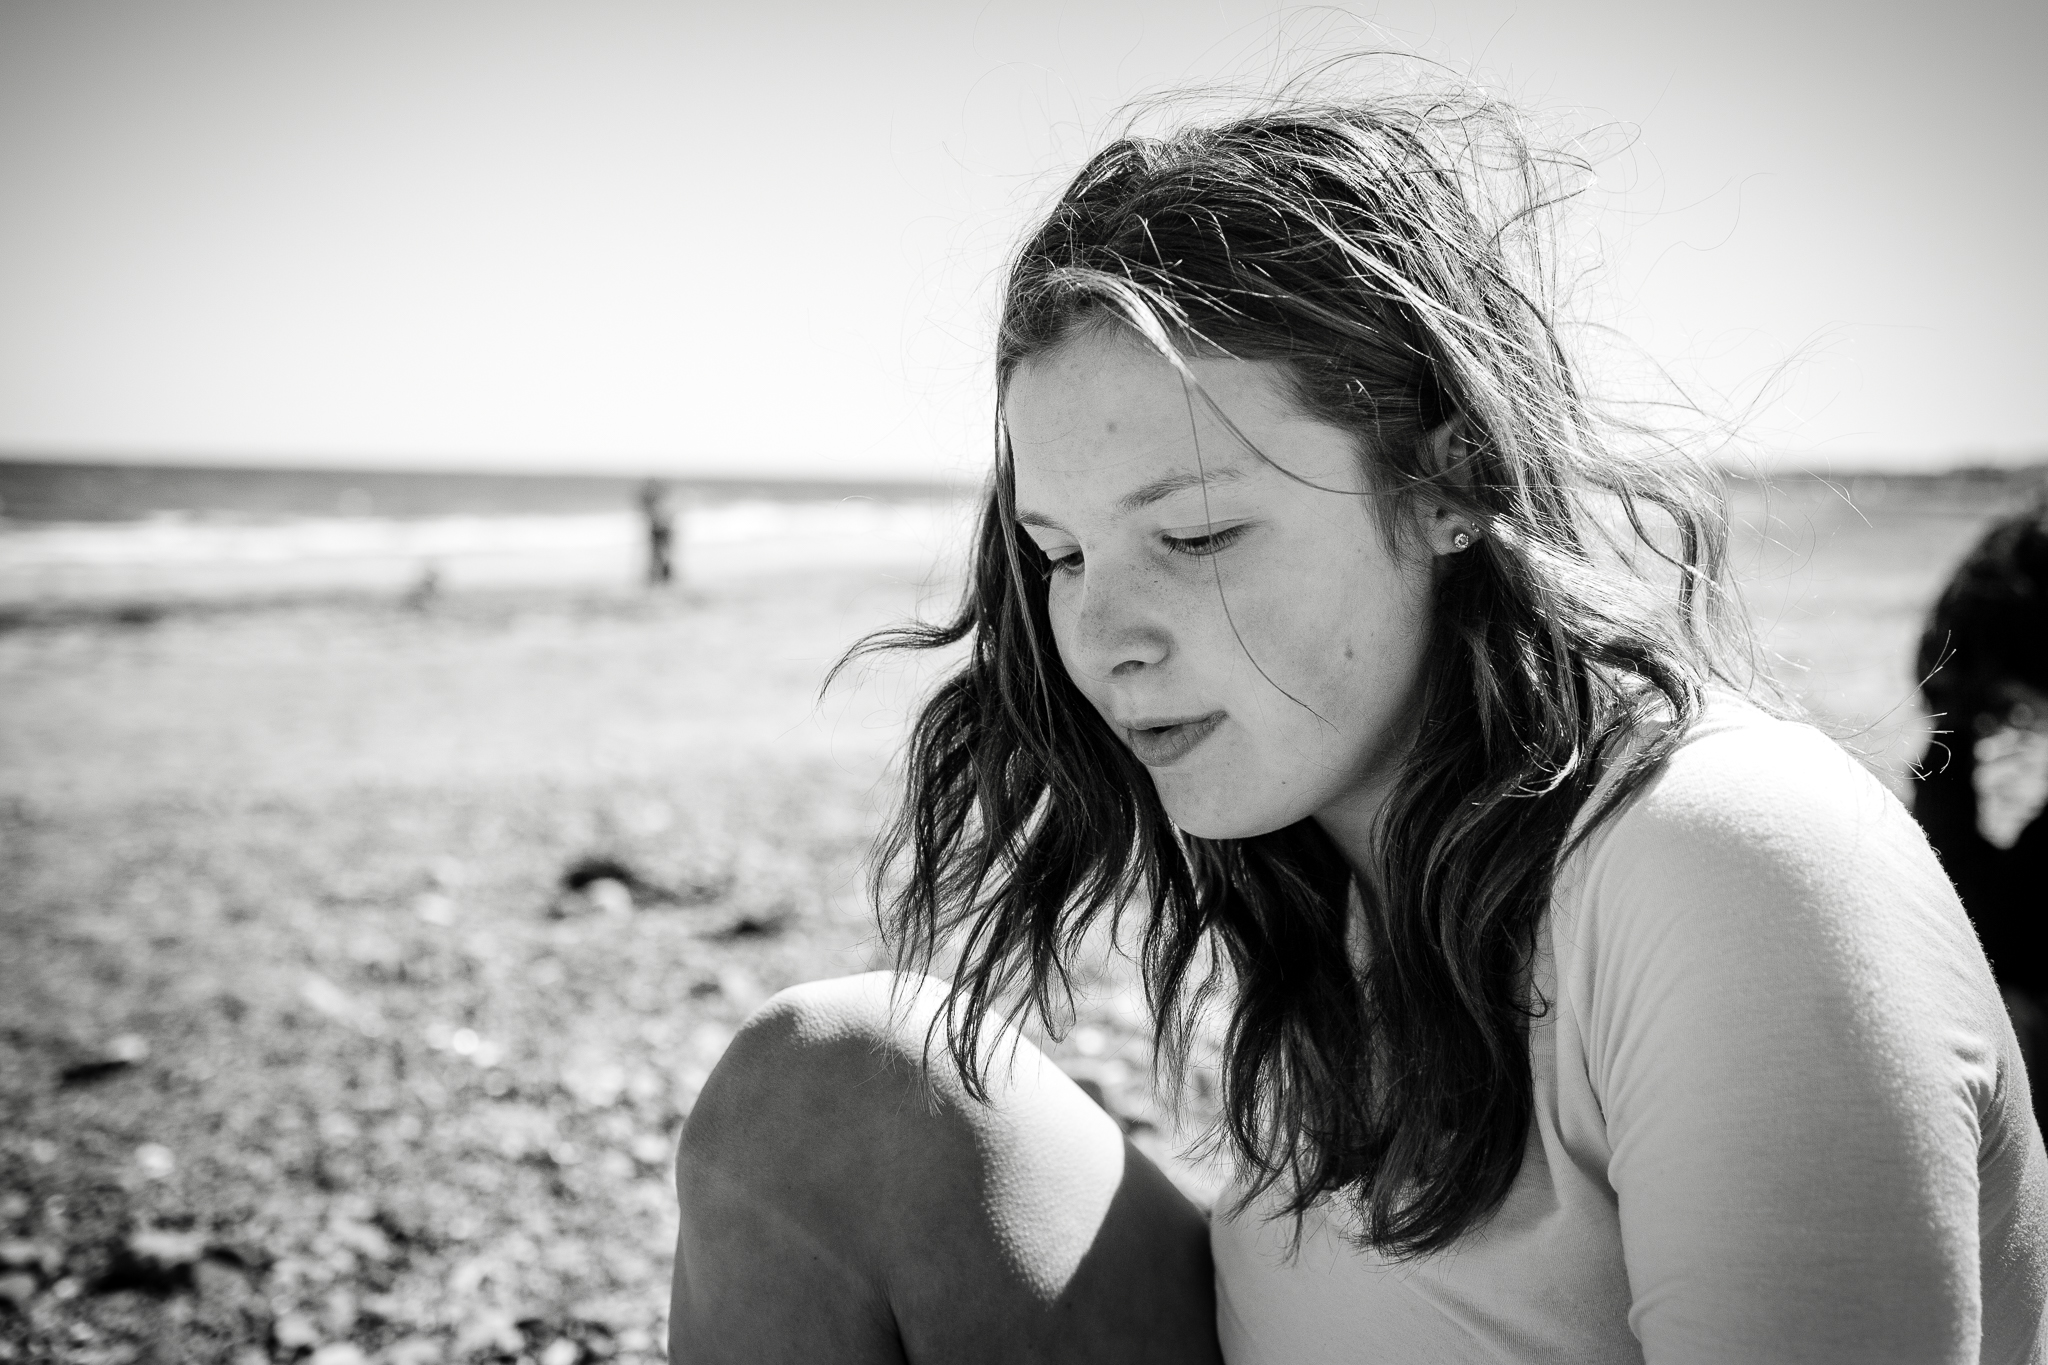 teenager sitting on beach with hair blowing